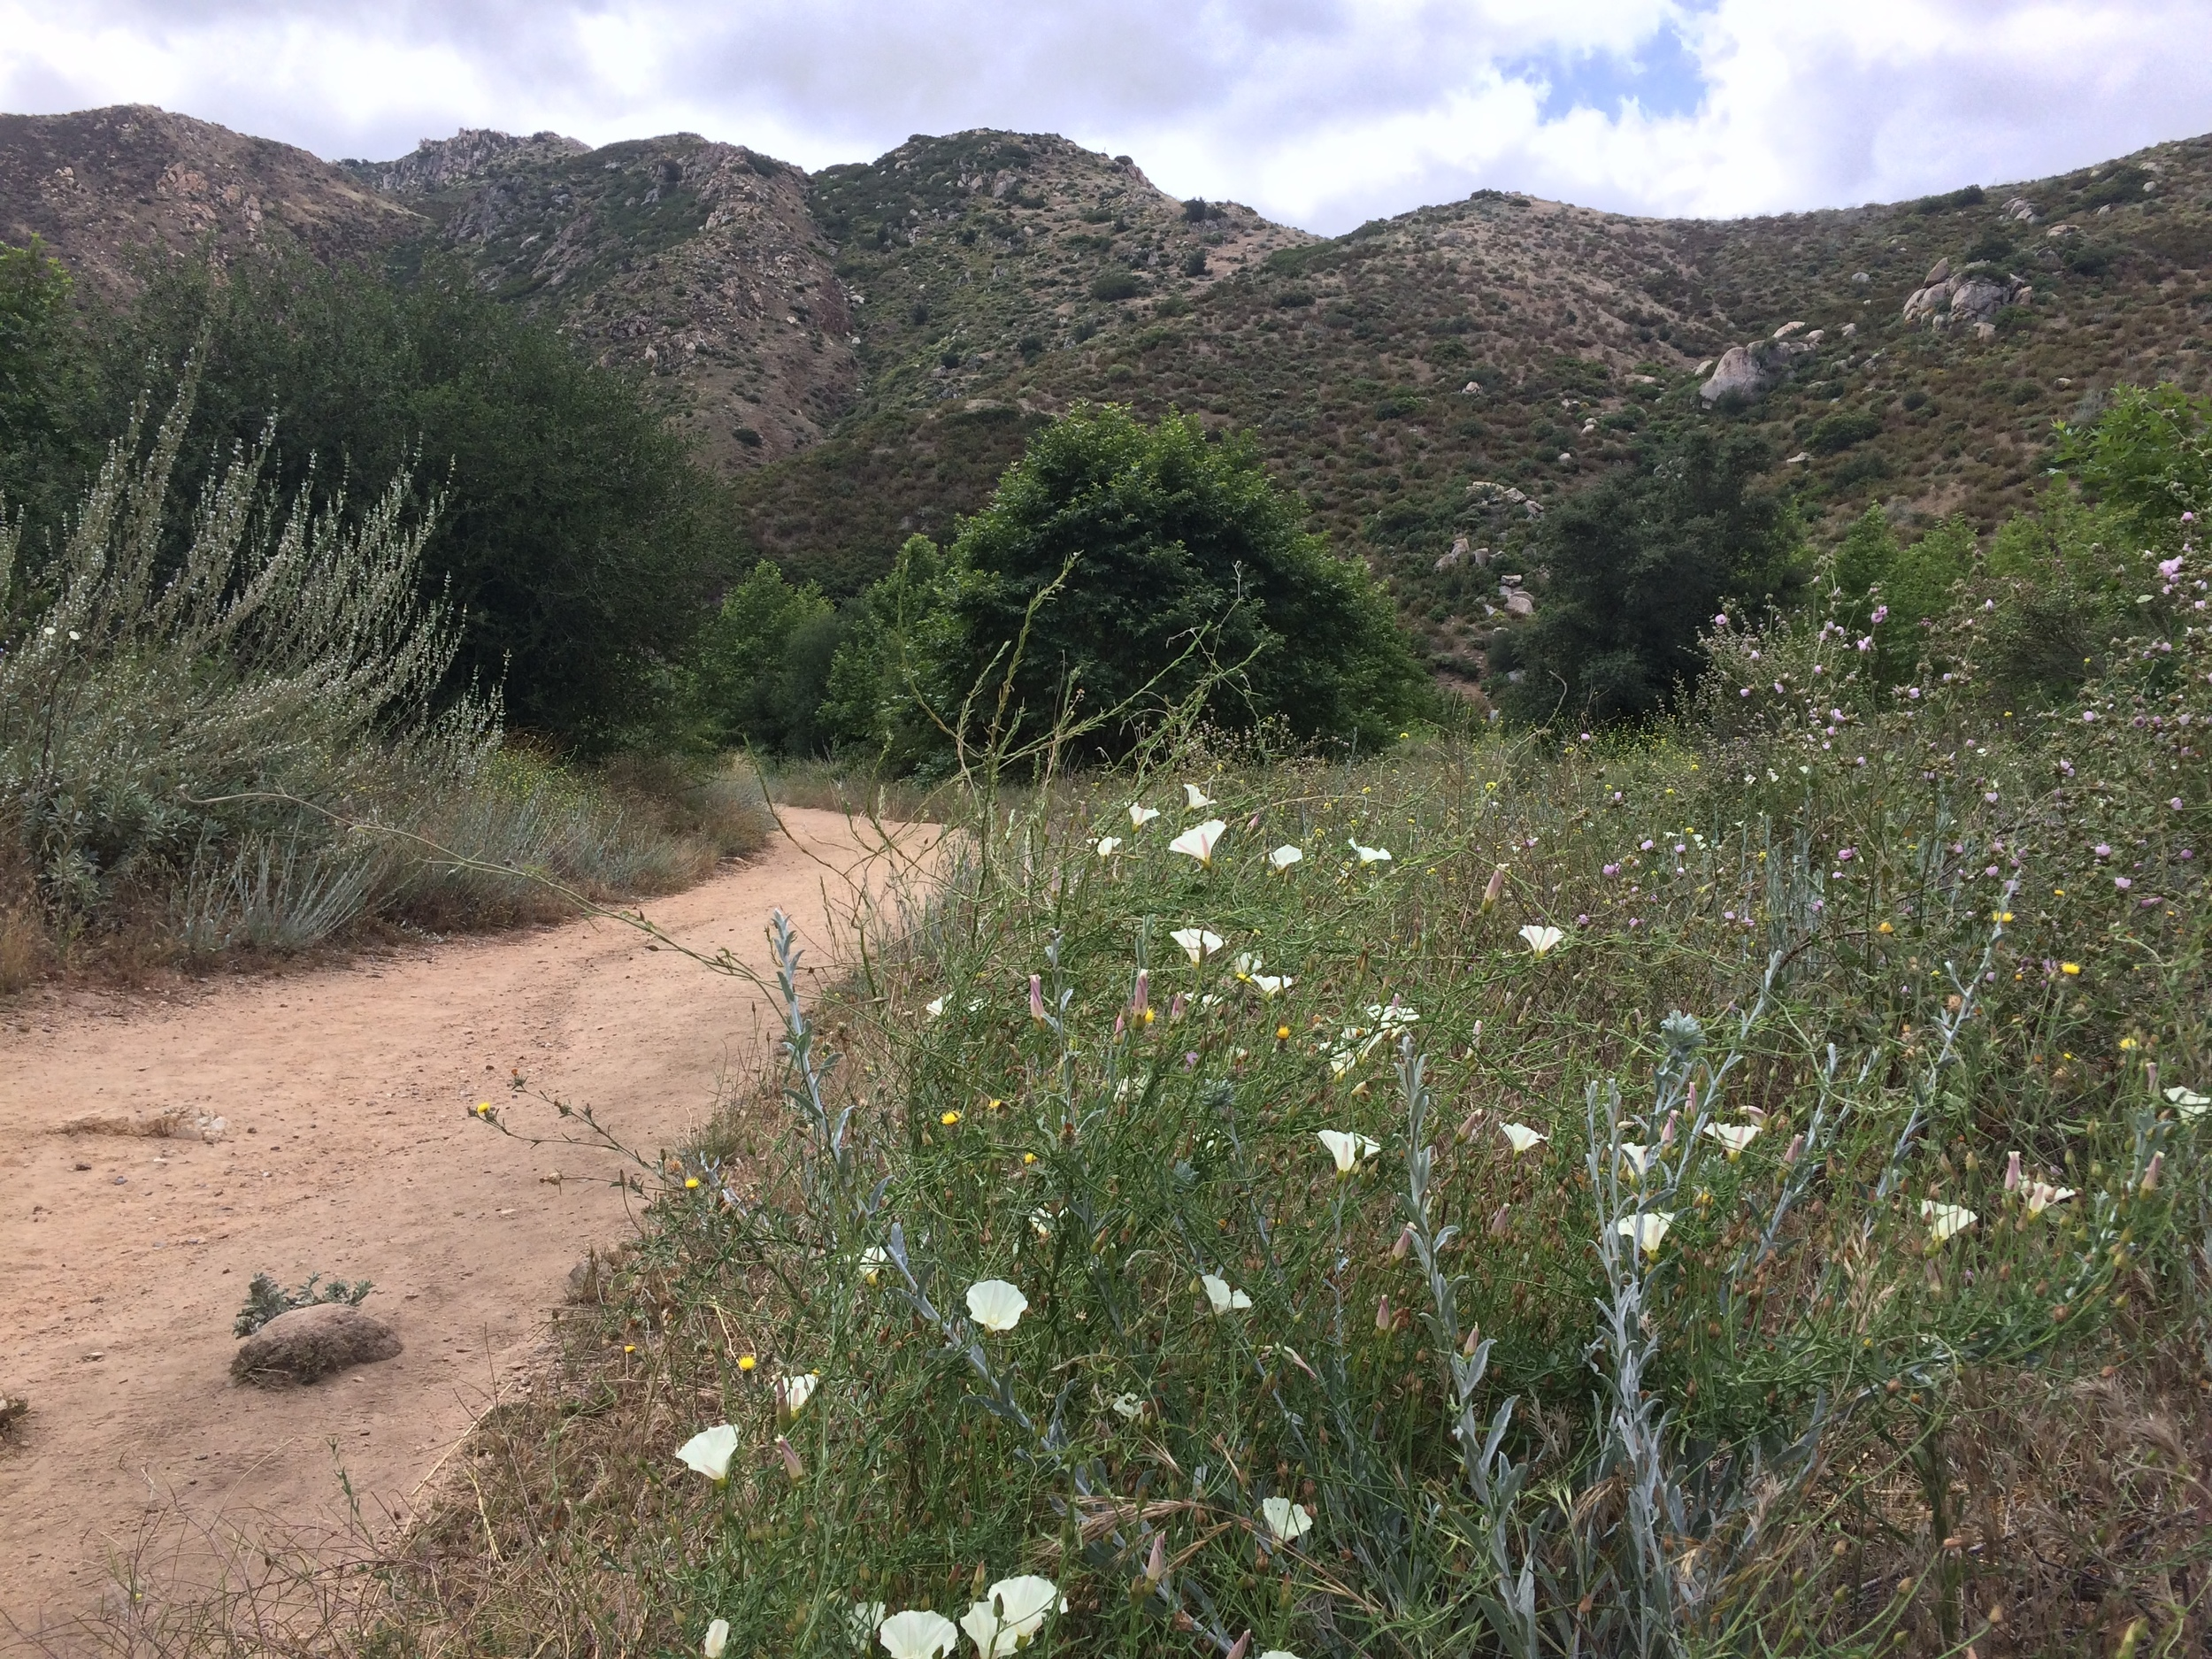 During the spring and winter months, hikers will see native wildflowers on the trail.